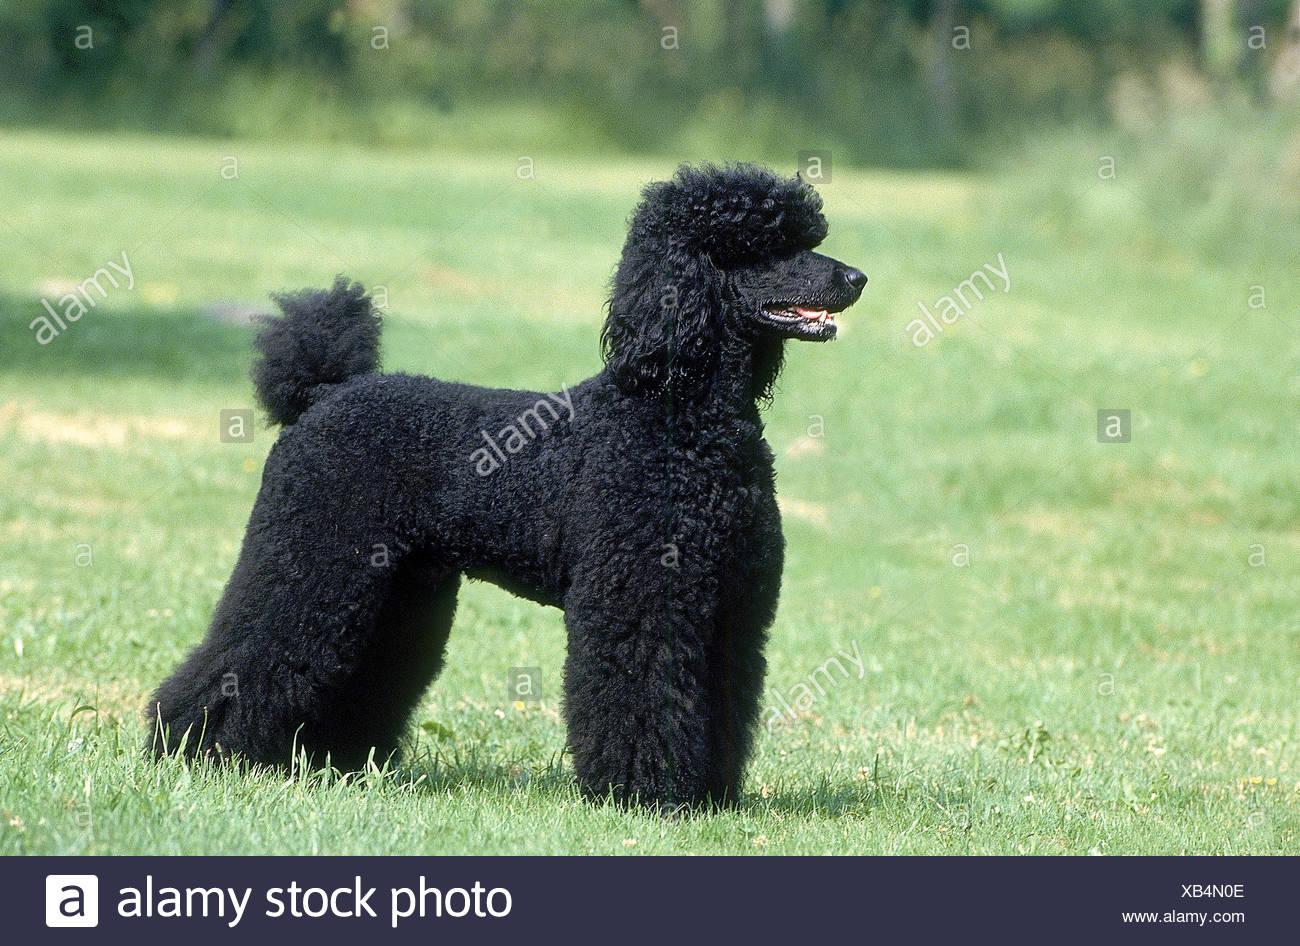 BLACK GIANT POODLE, ADULT STANDING ON GRASS - Stock Image